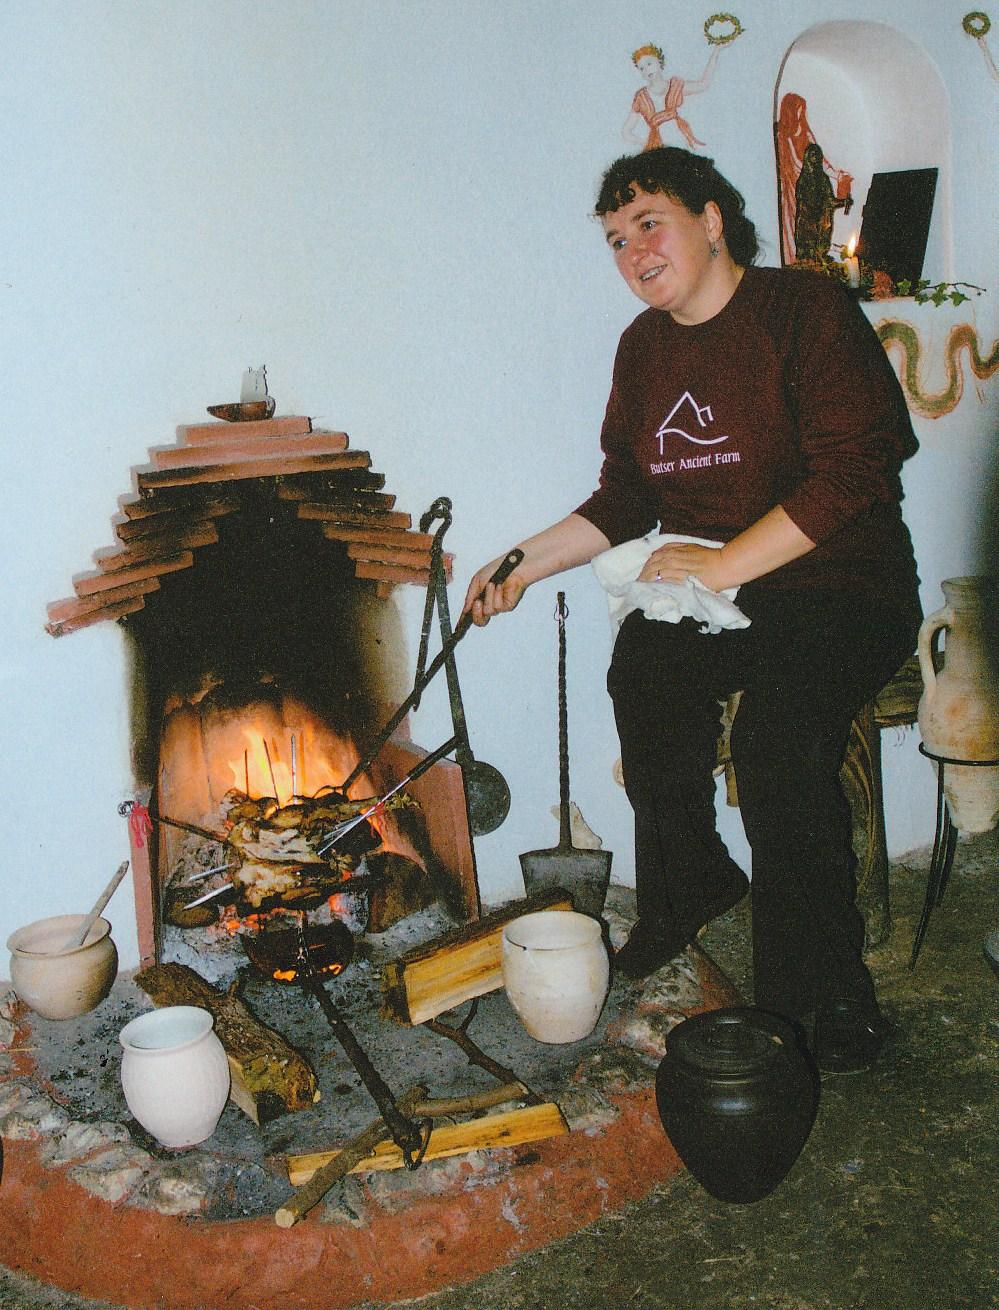 An example of Roman food being cooked Credit: Sally Grainger